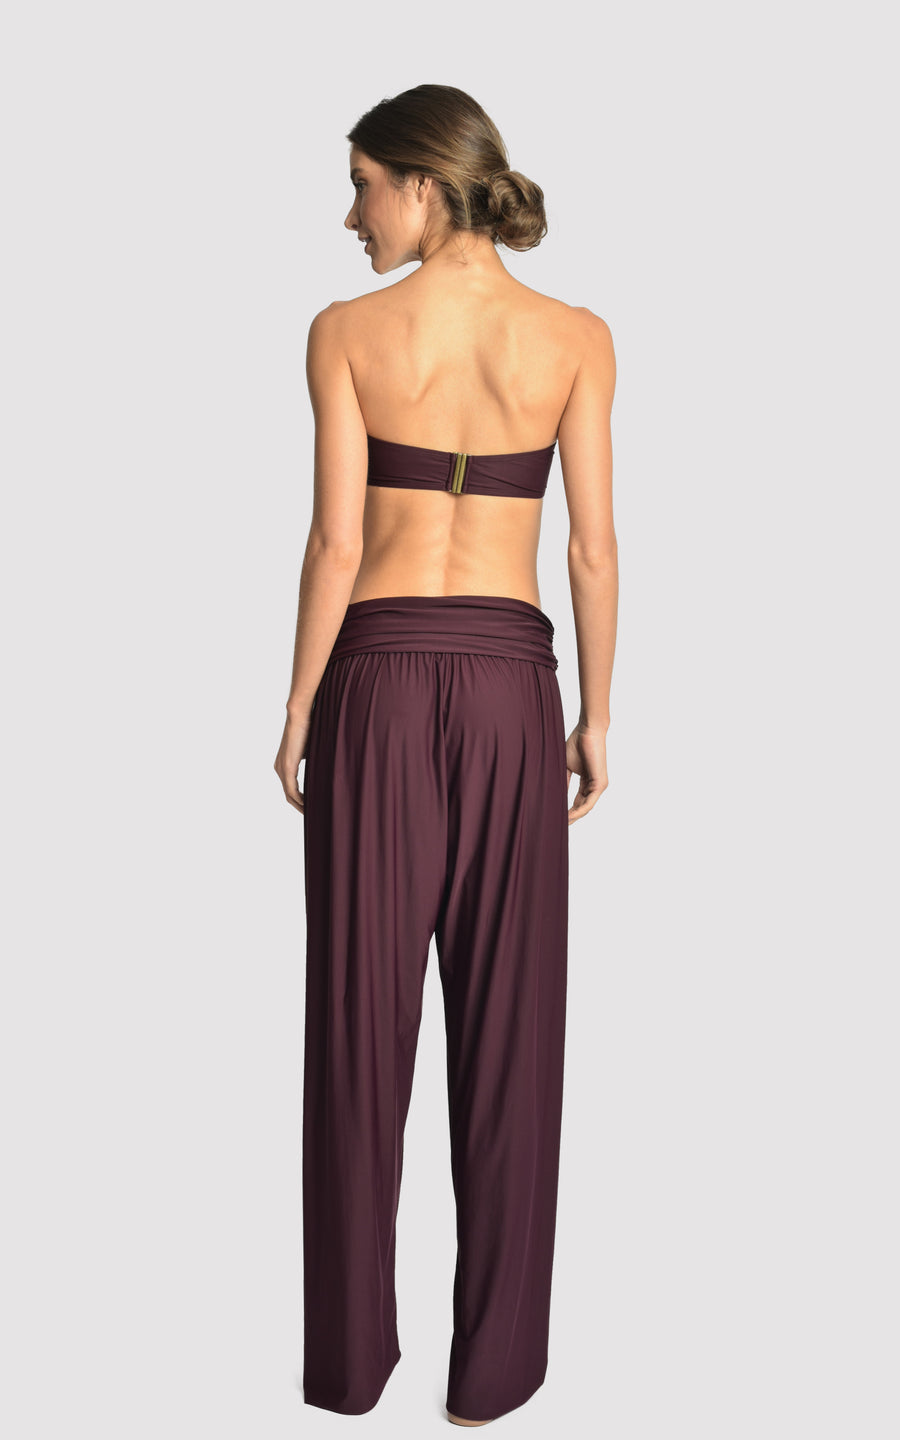 EGGPLANT YOGA TOUCH PANTS